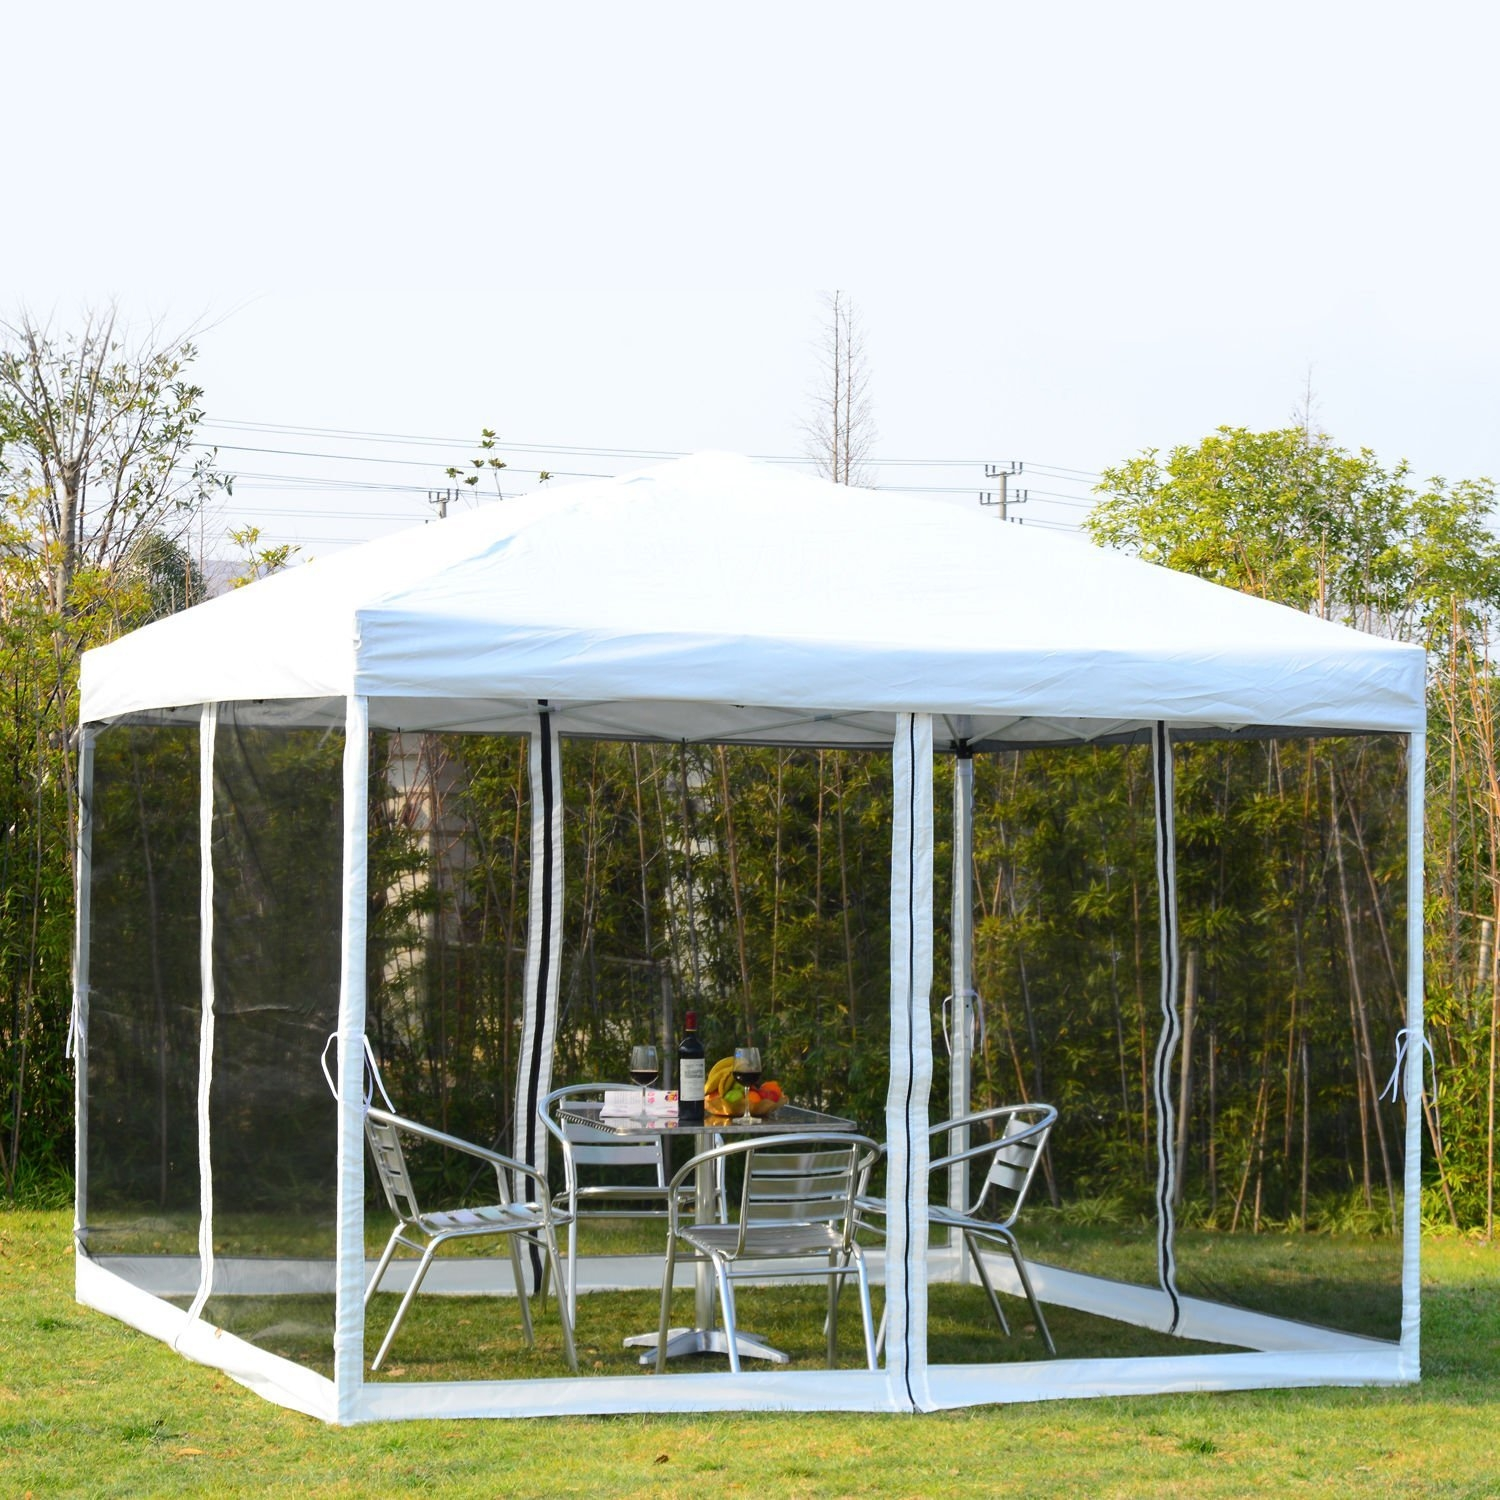 New MTN-G 10x10ft Outdoor Patio Pop Up Party Tent Canopy Gazebo